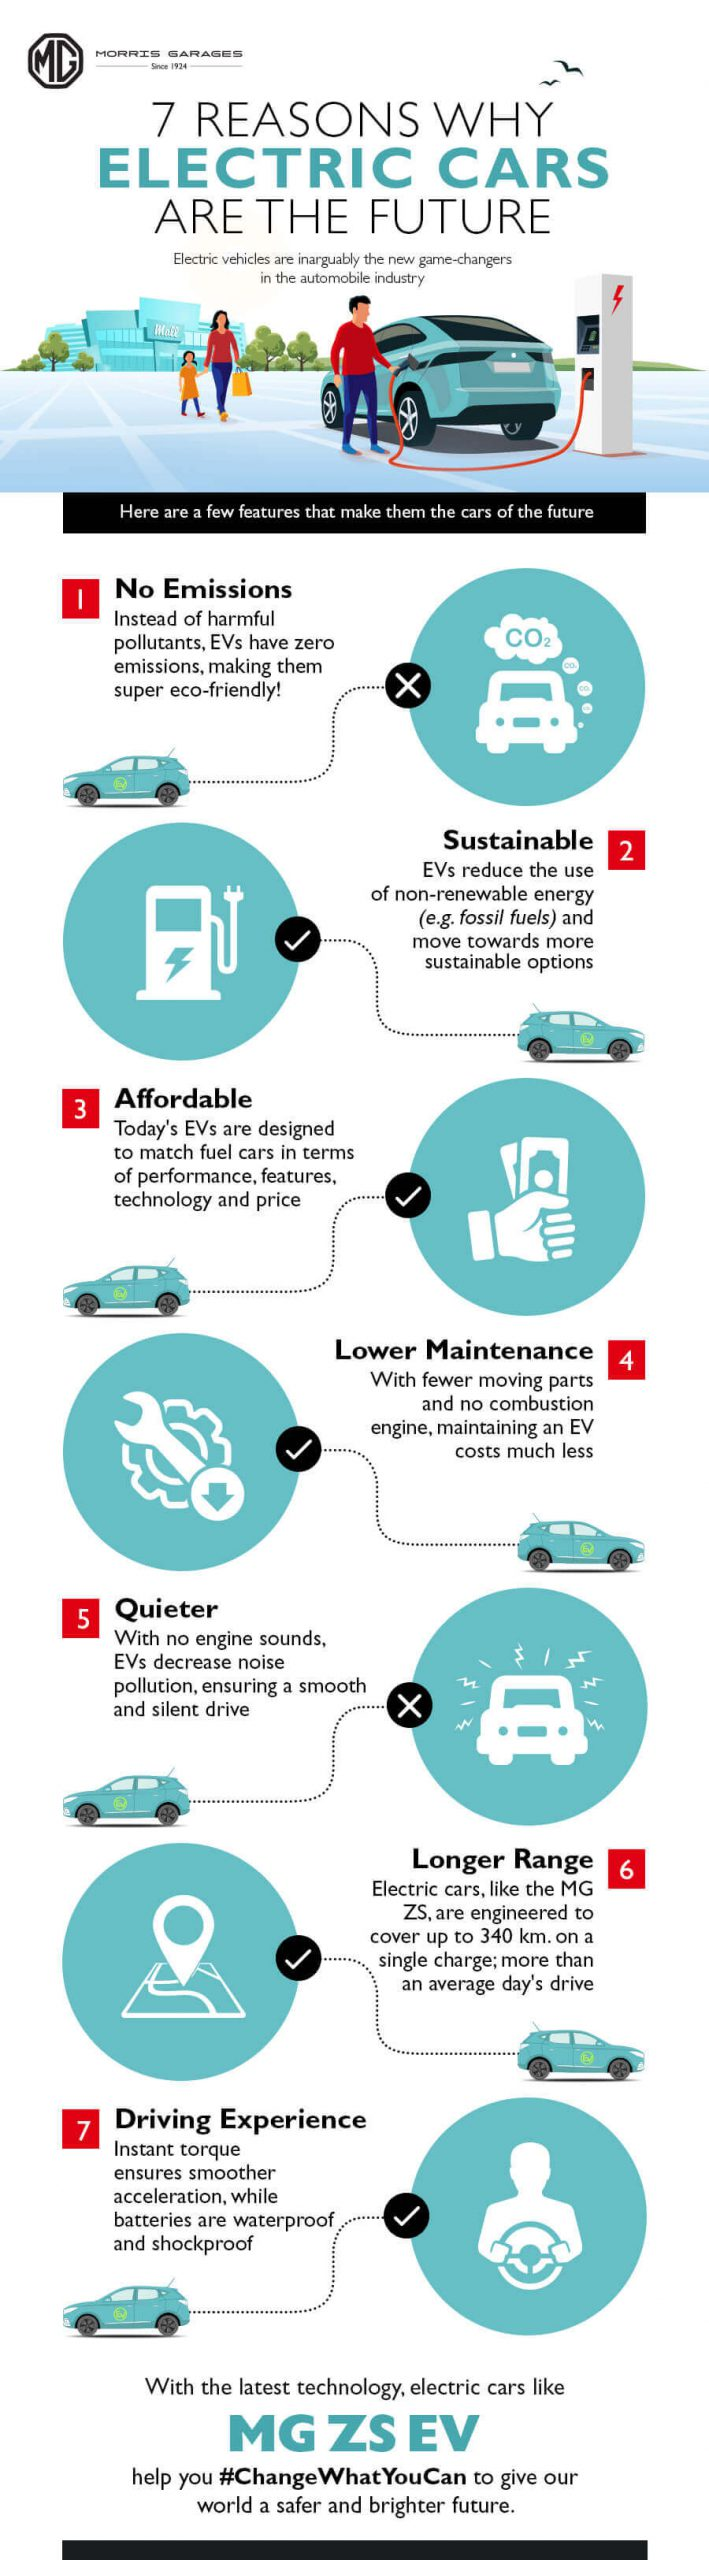 7 Reasons why electric cars are the future